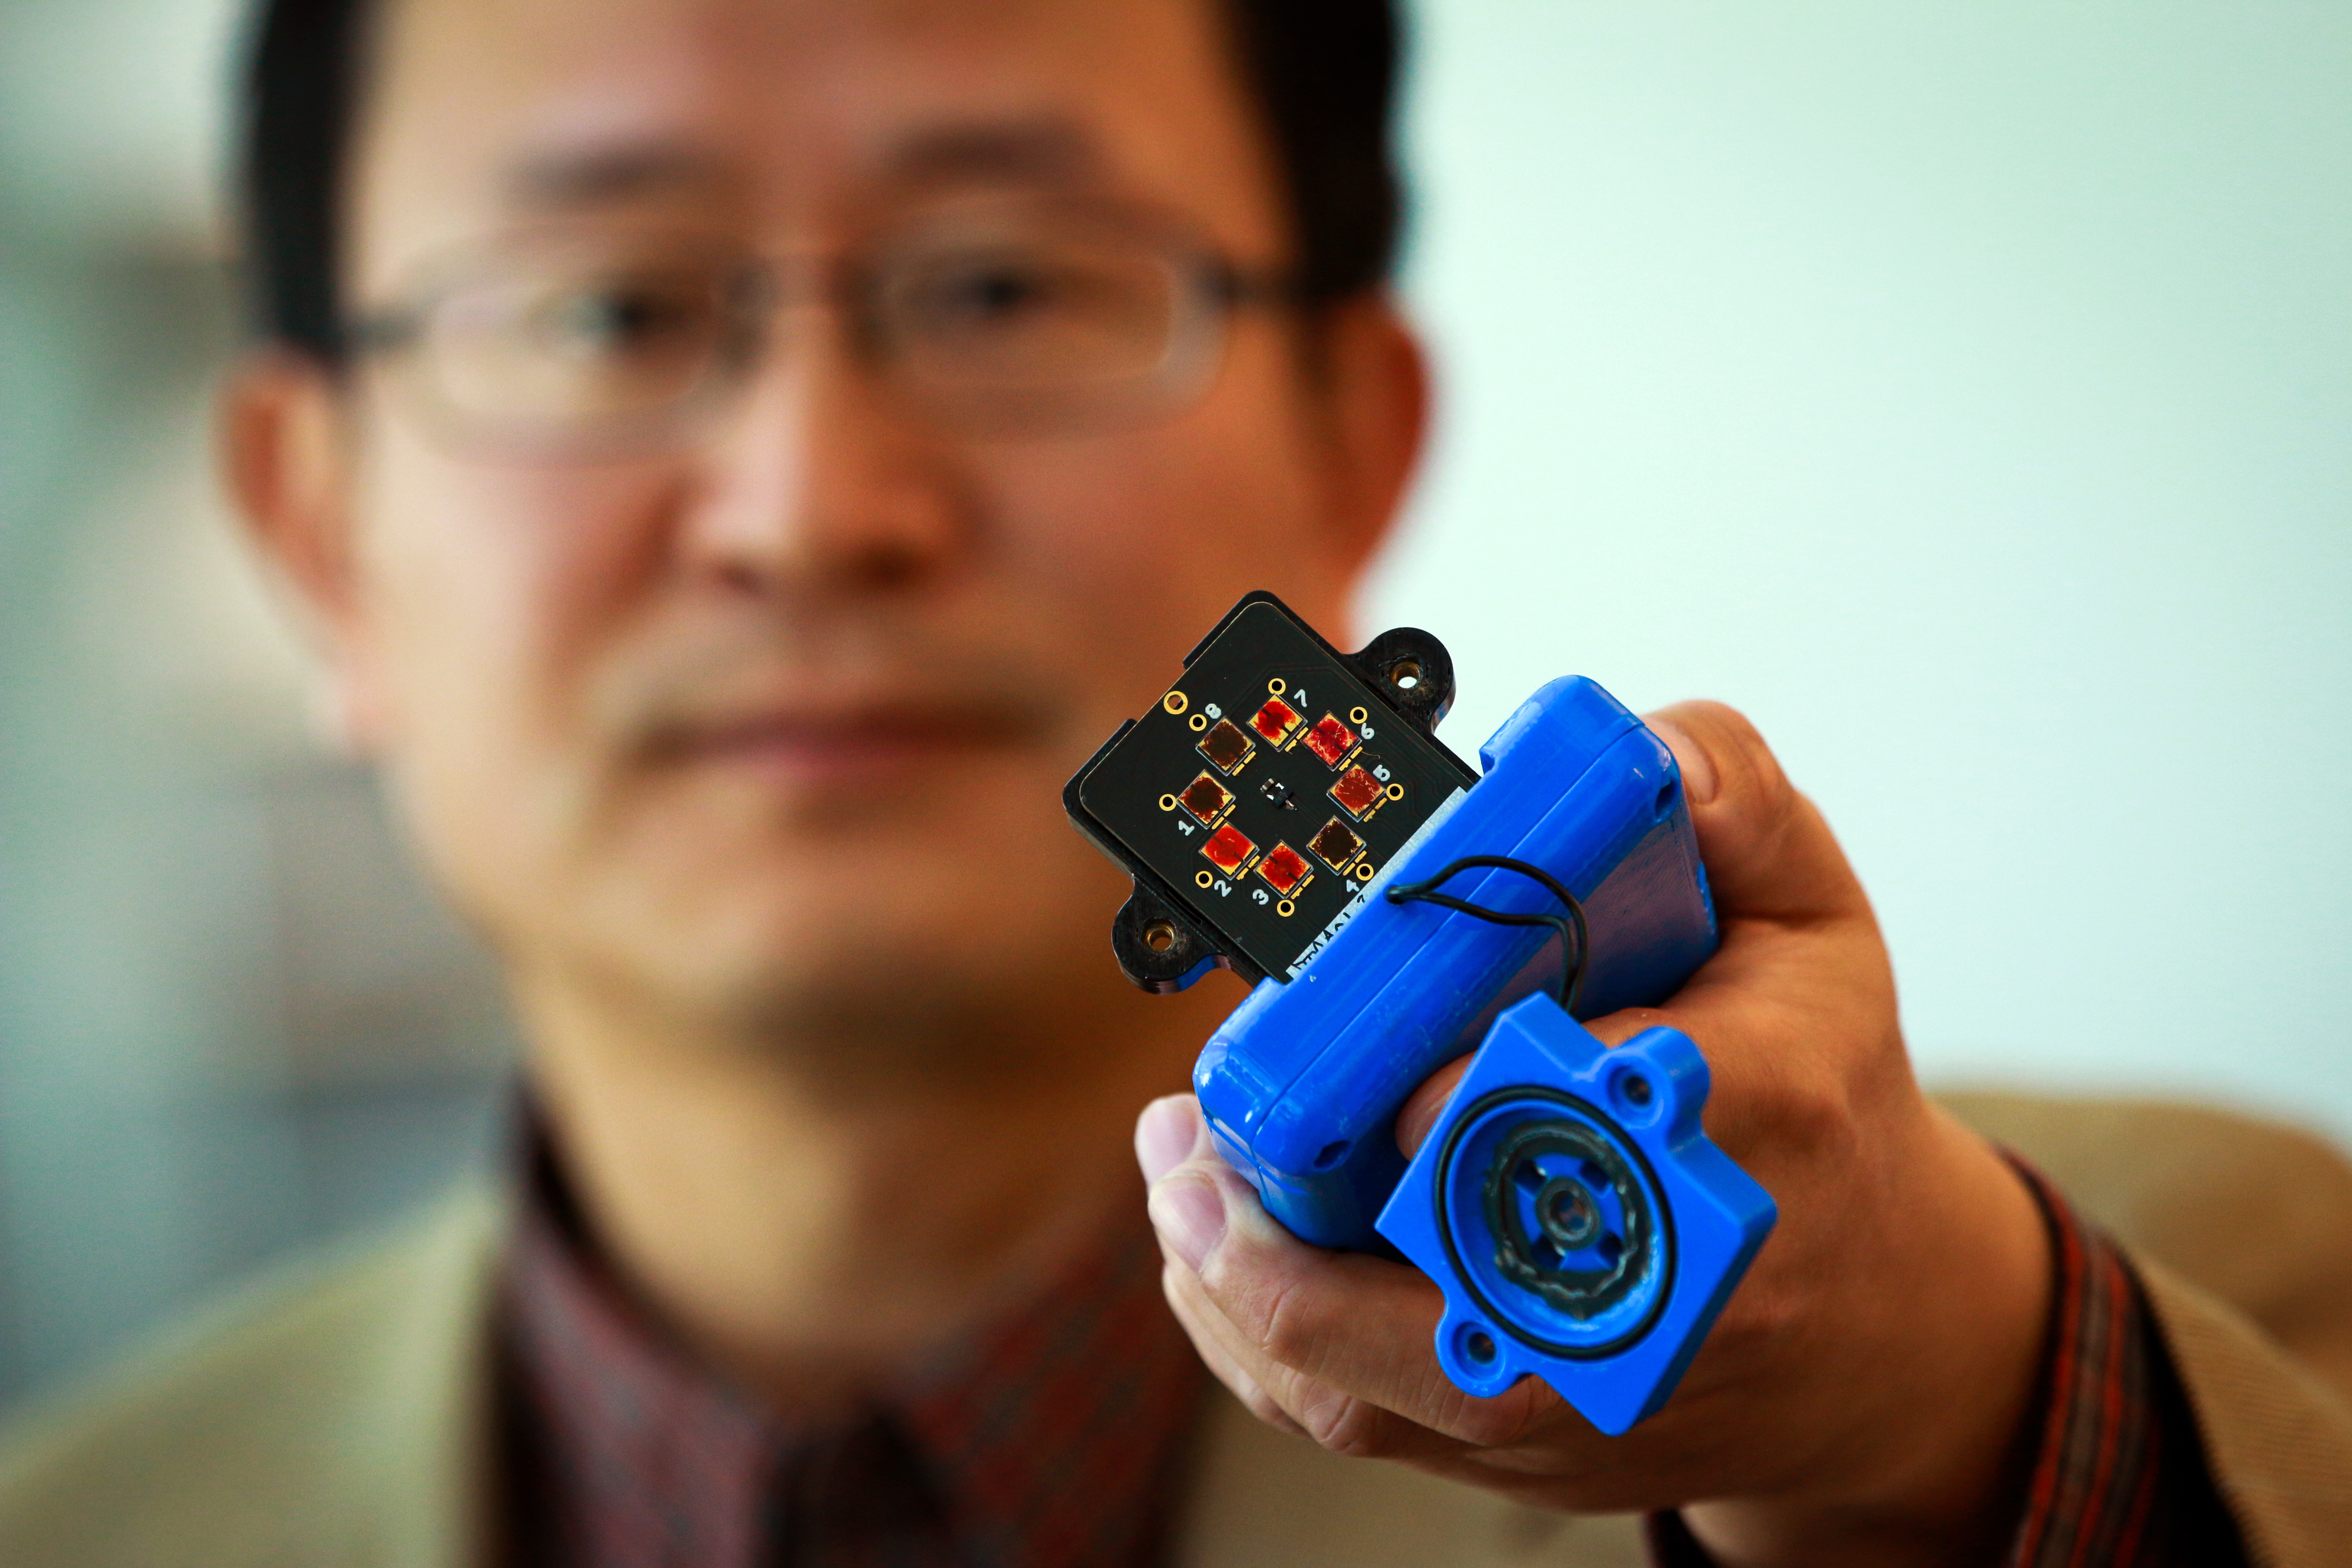 Ling Zang holds a prototype device outfitted with his newly-developed carbon nanotube material that can detect explosives, toxic chemicals and illegal drugs